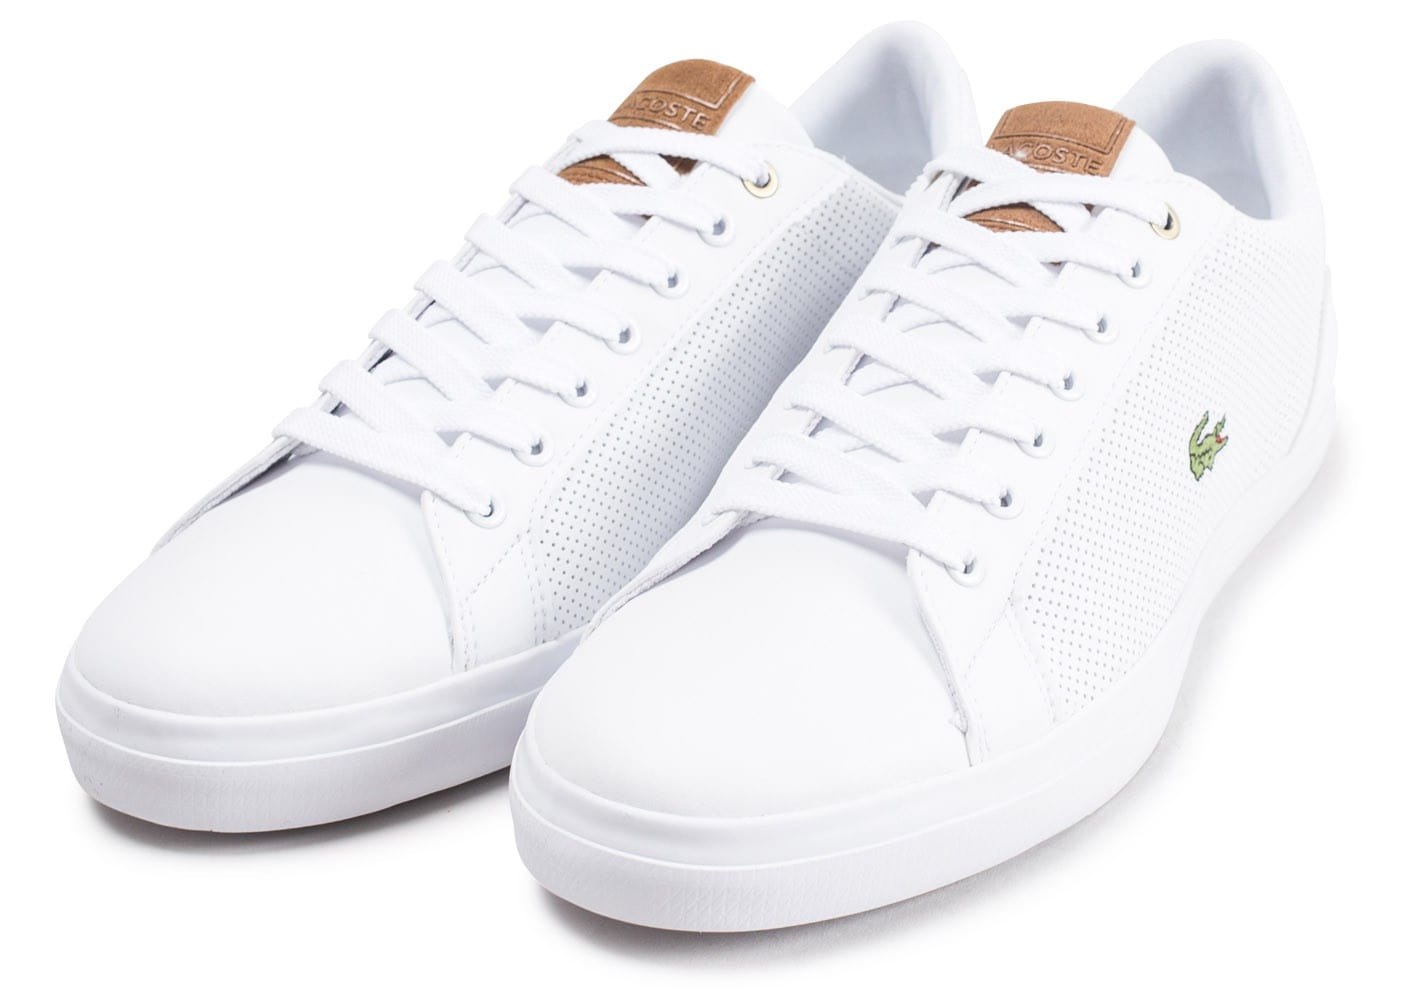 Chaussure Homme Blanche Homme Lacoste Blanche Homme Chaussure Lacoste Chaussure Lacoste Homme Blanche Chaussure Ib7vYgf6y